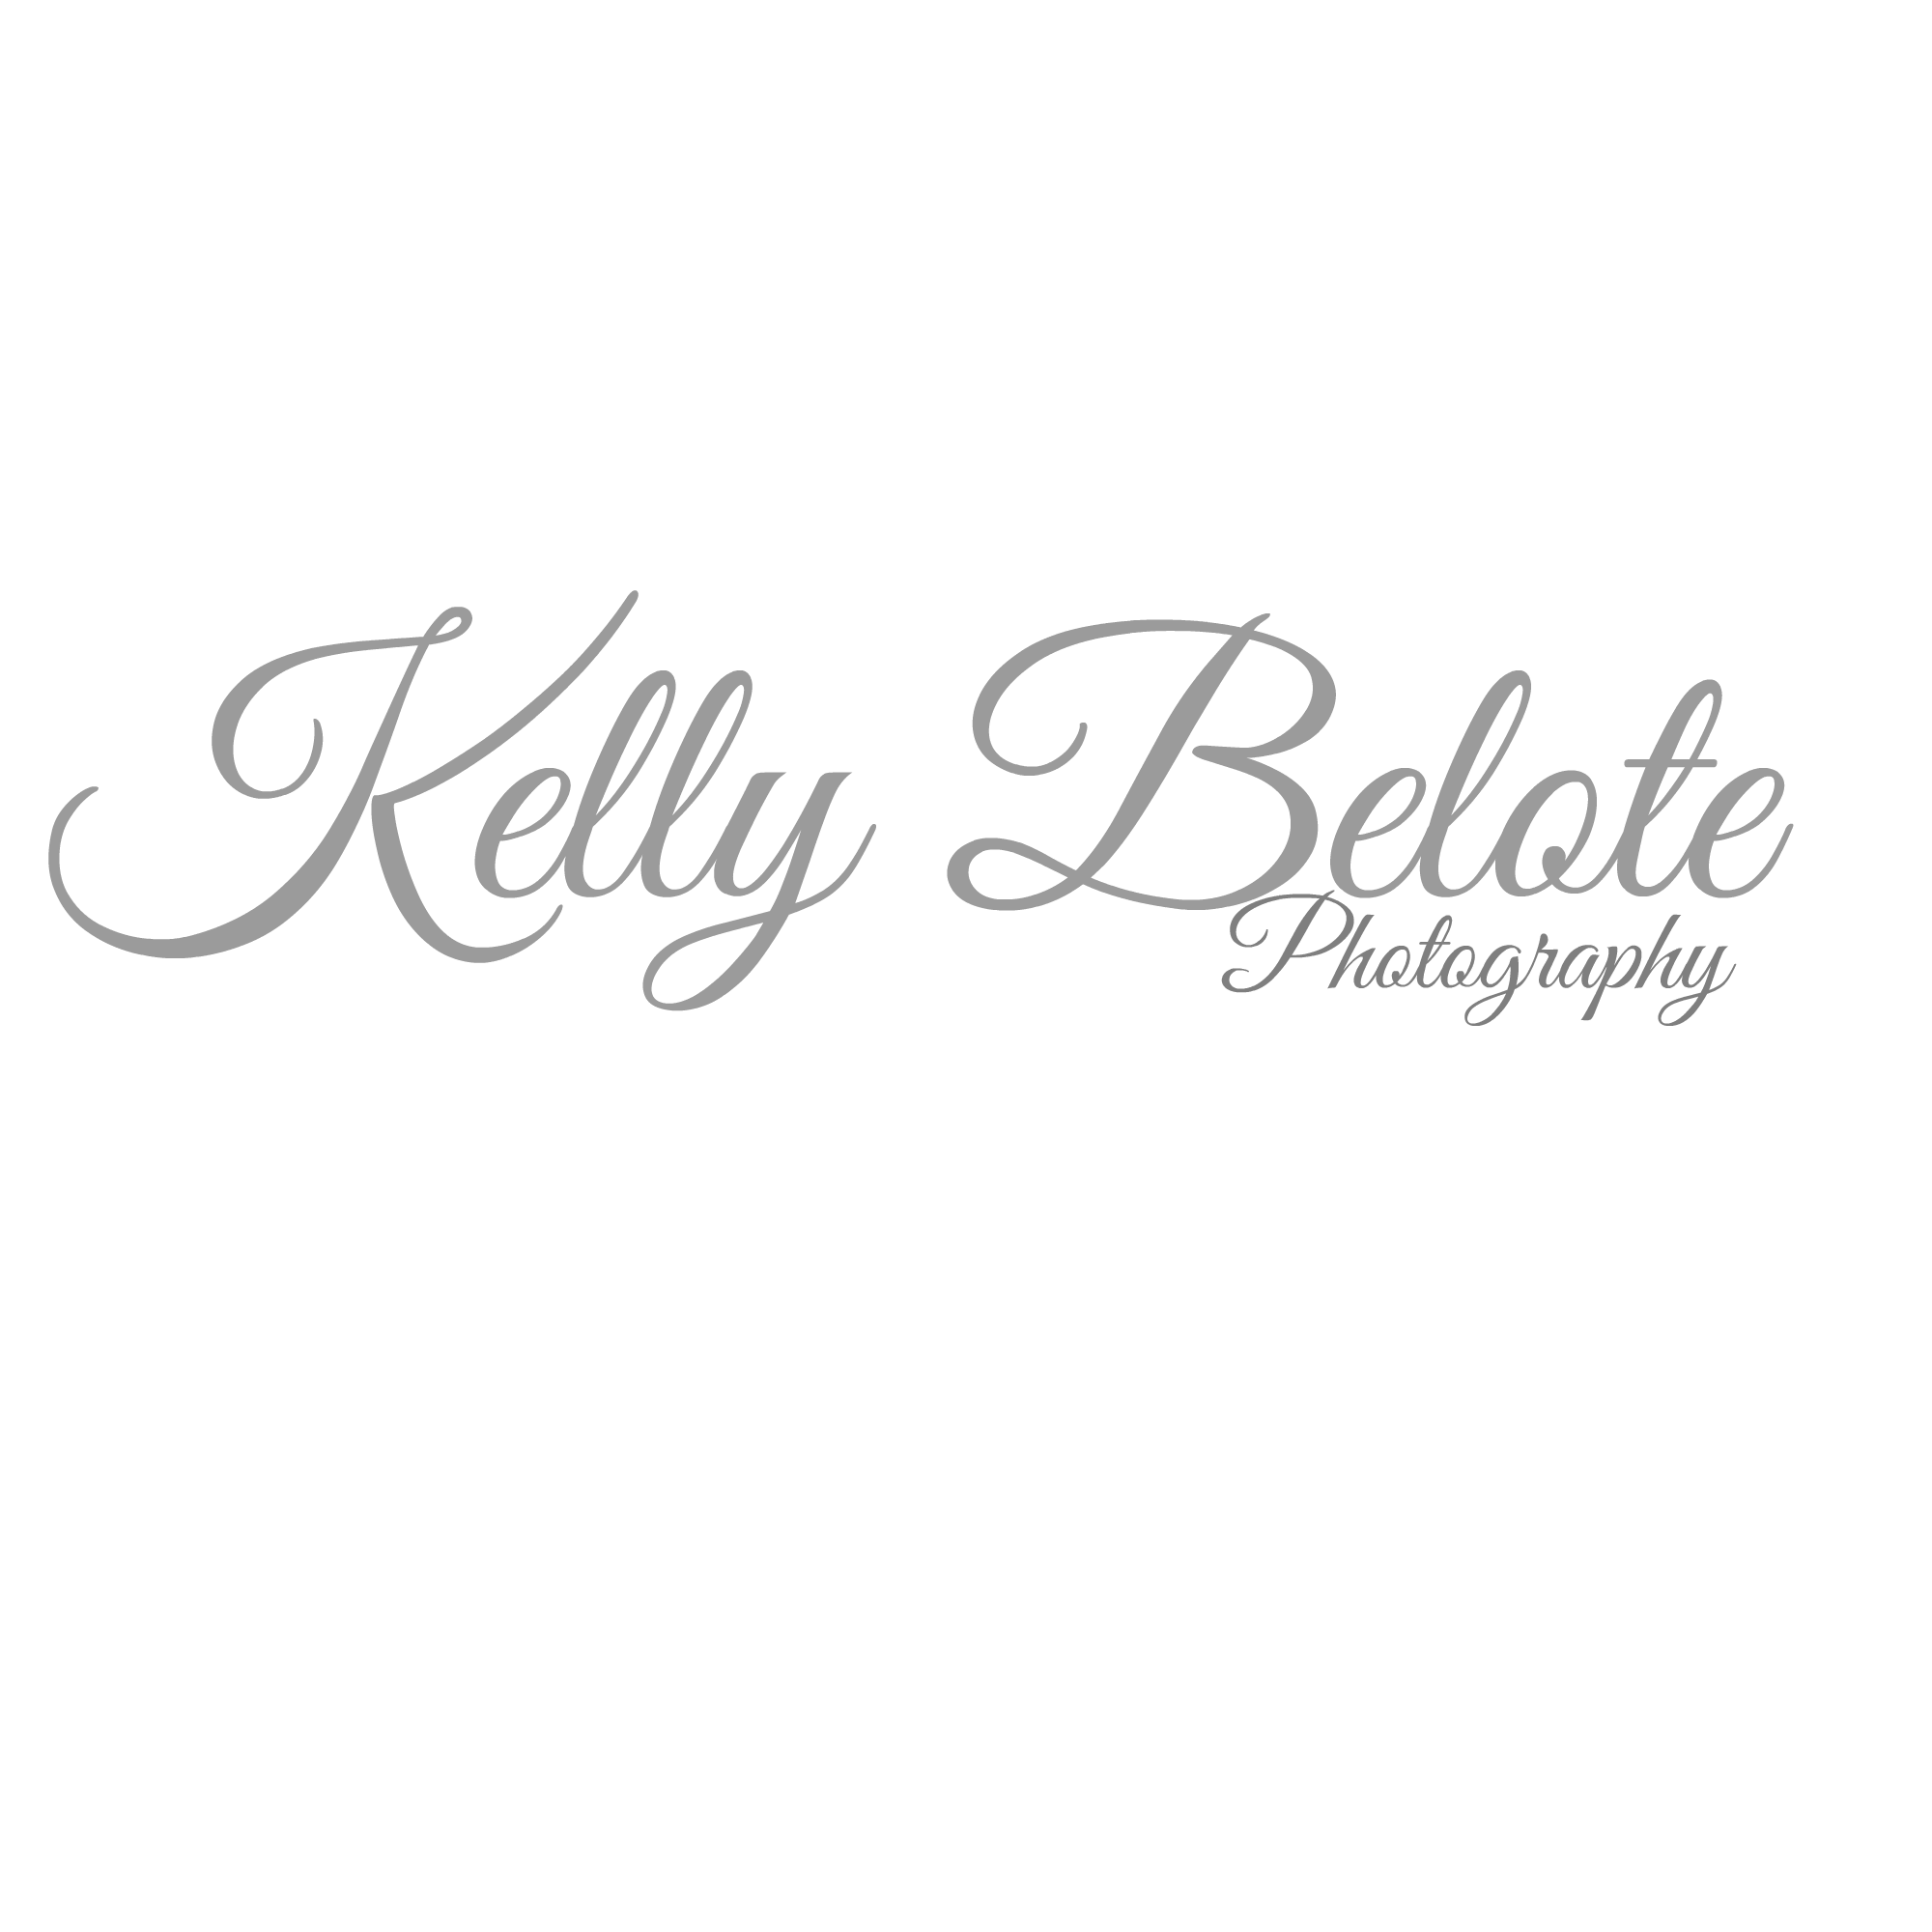 Kelly Belote